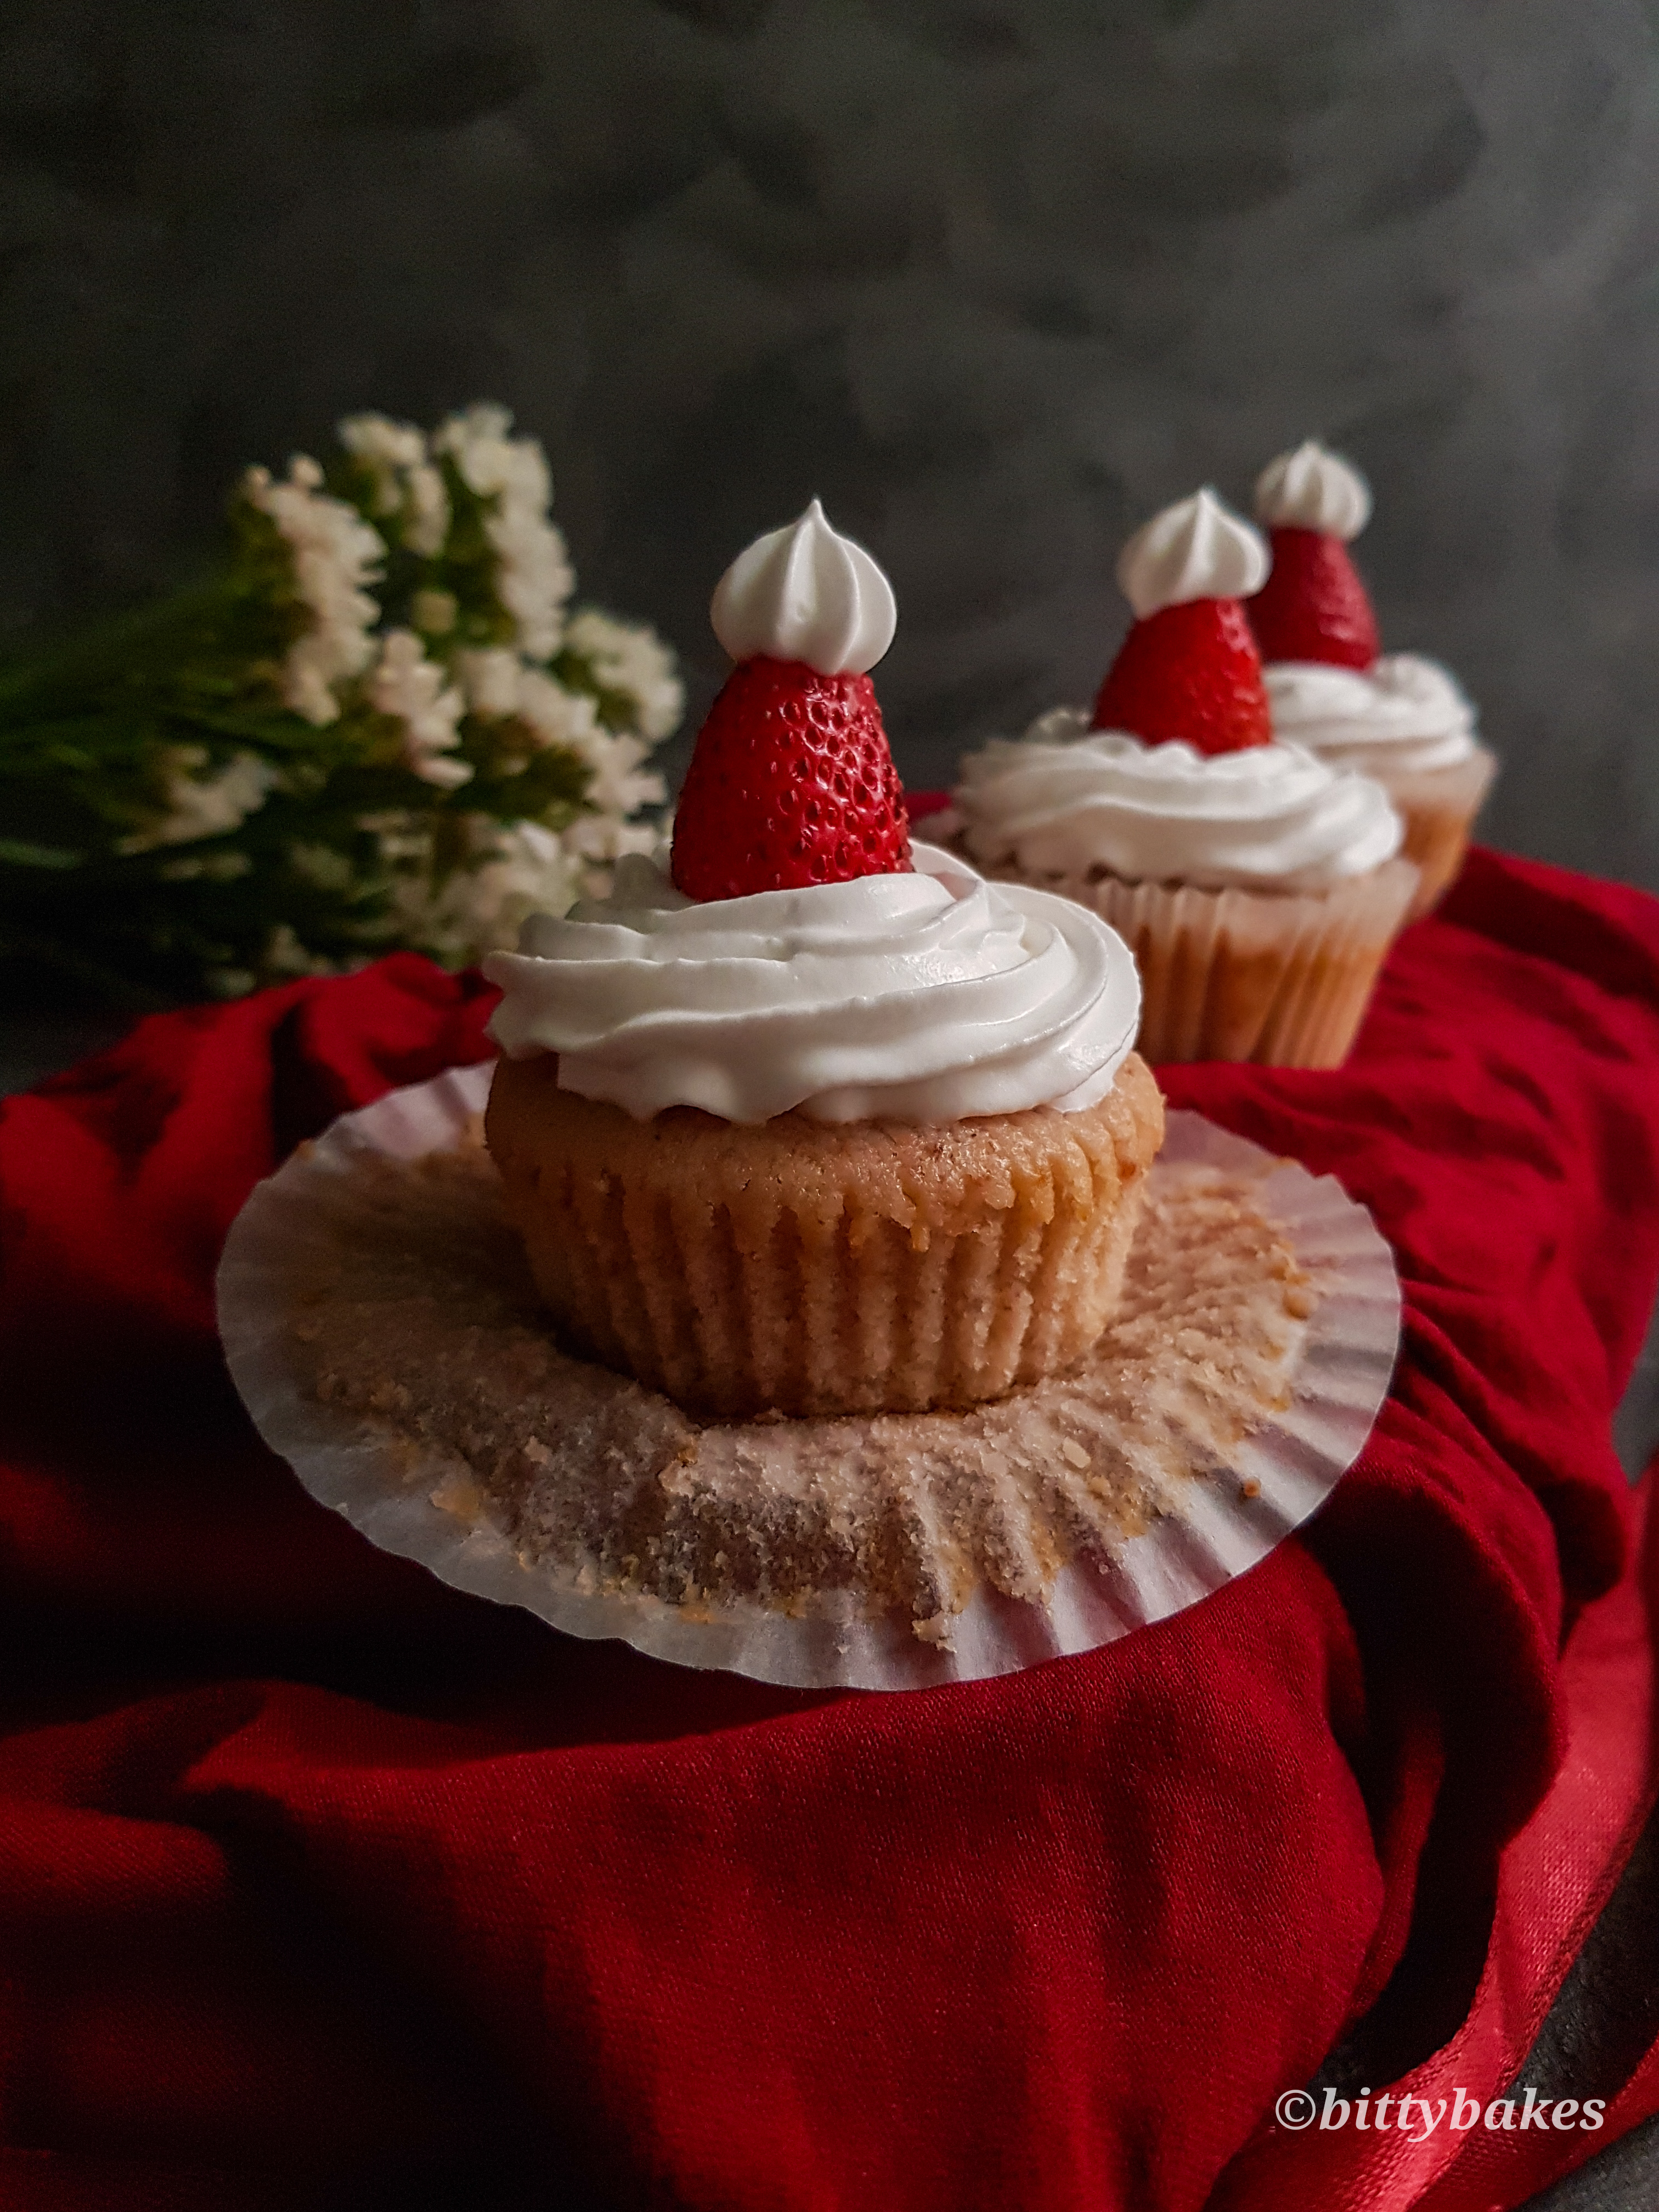 Best Ever Strawberry Cupcakes